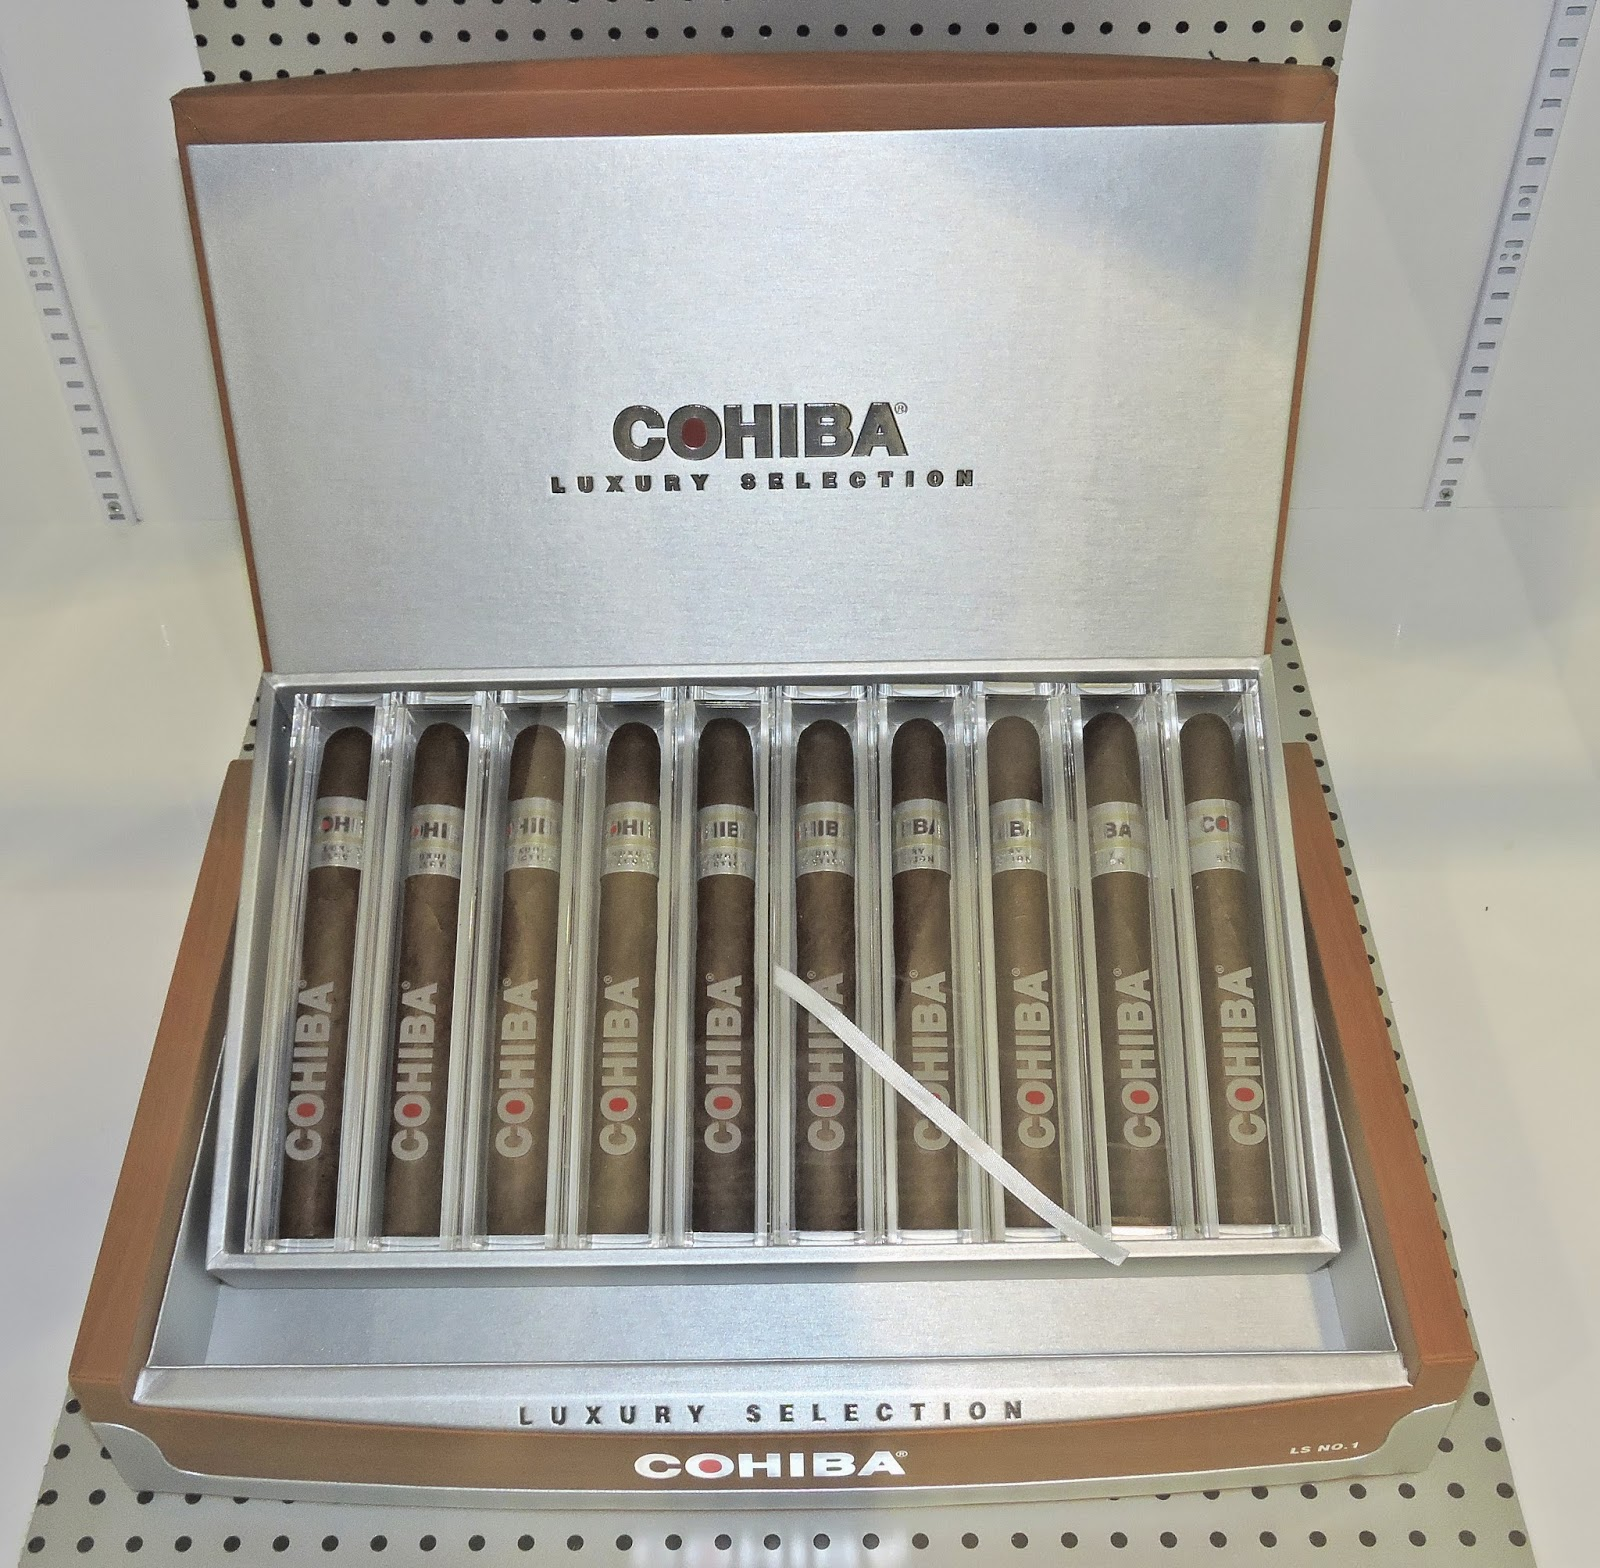 Cigar News: Cohiba Luxury Selection (Cigar Preview)